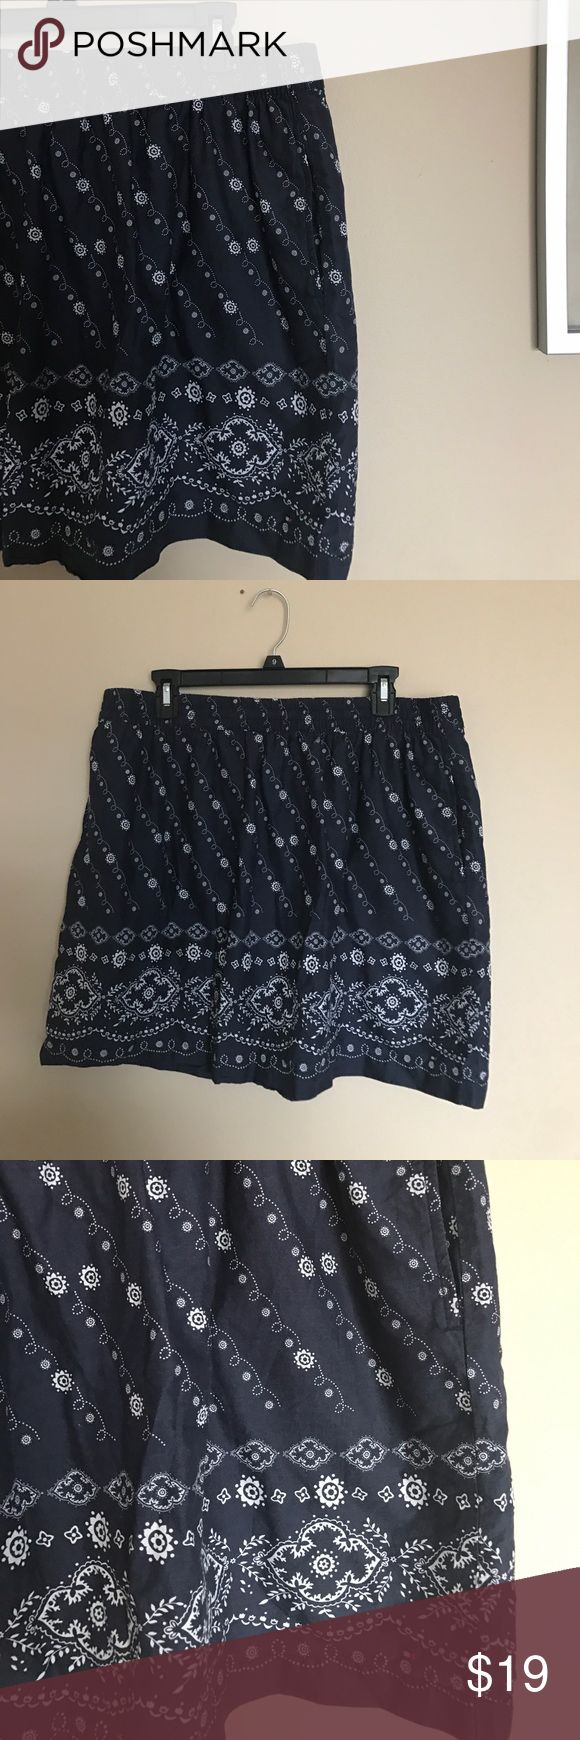 Tommy Hilfiger navy and white printed cotton skirt Tommy Hilfiger navy and white printed cotton skirt. Comfortable stretch waist cotton skirt with pockets. Floral and spiral tape design print. Perfect for spring and summer to pair with white tea and sandals for a comfortable casual look. I love reasonable offers bundle and save! Tommy Hilfiger Skirts Midi